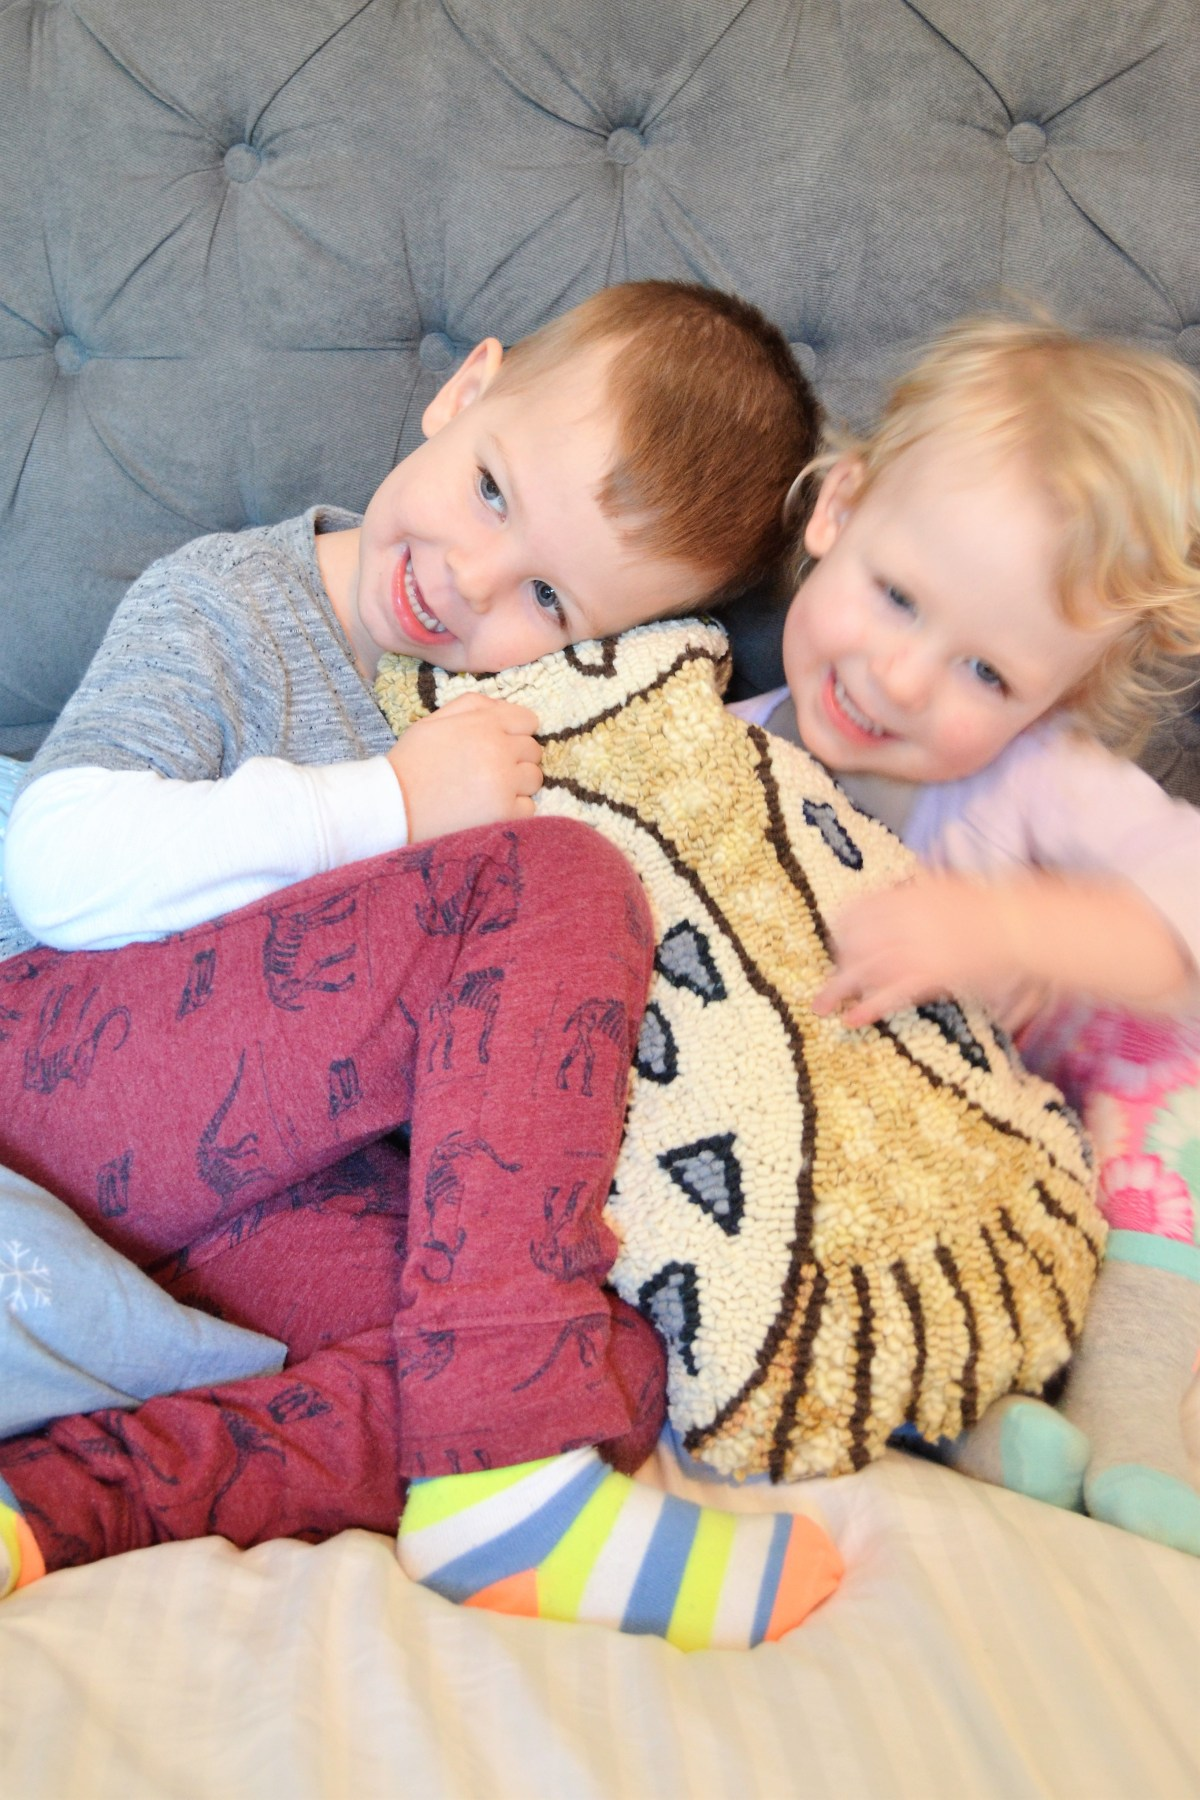 Rug Hooking: How to Make Your Rug Hooking Patterns into a Pillow! - kids pillows